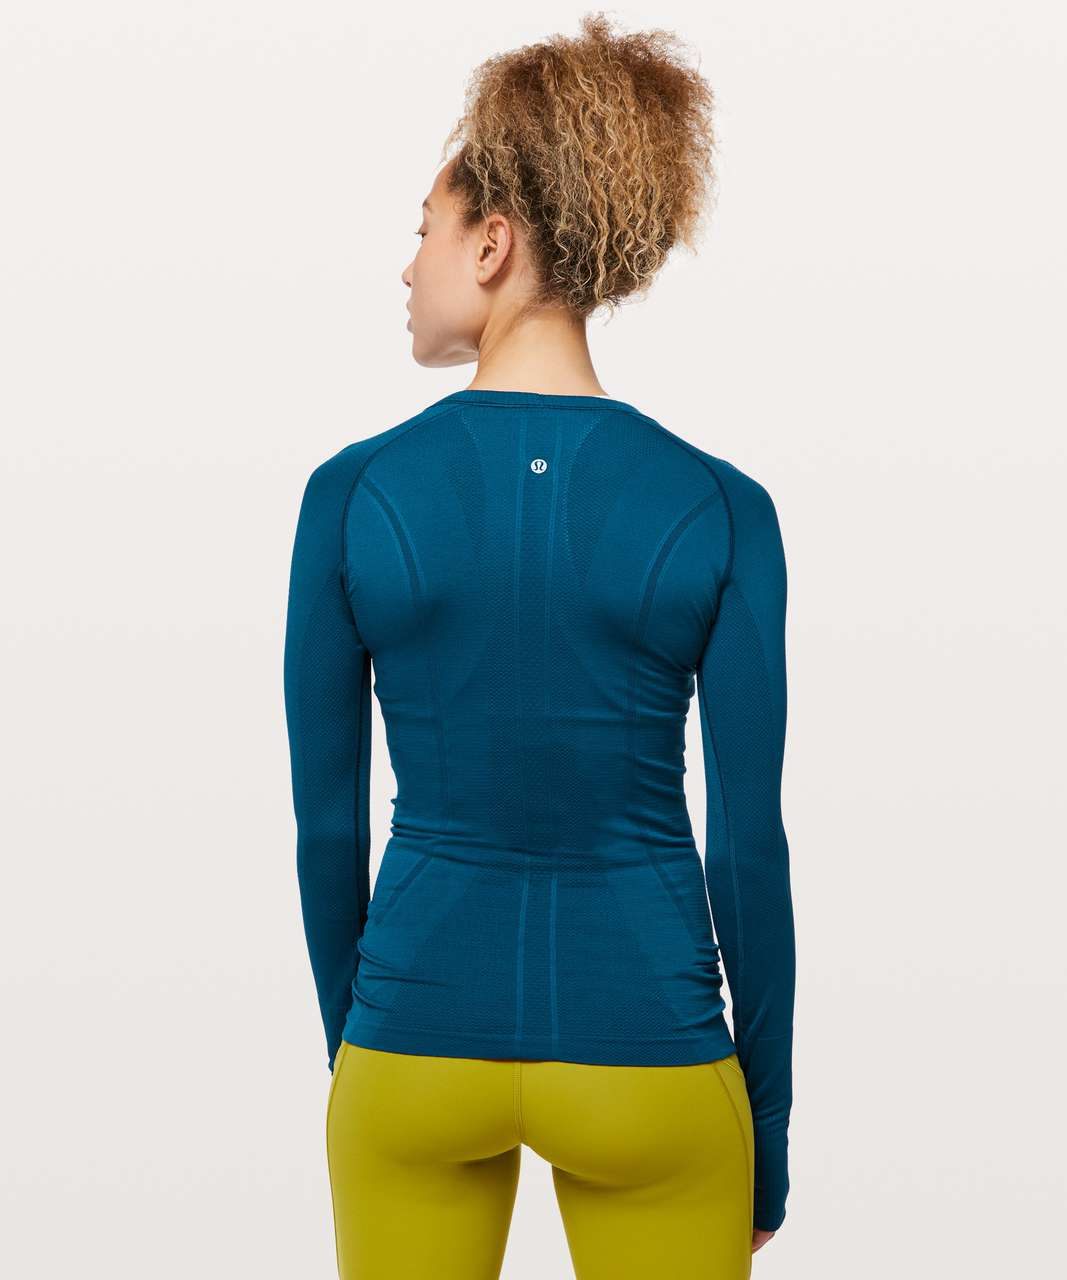 Lululemon Swiftly Tech Long Sleeve Crew - Deep Marine / Deep Marine